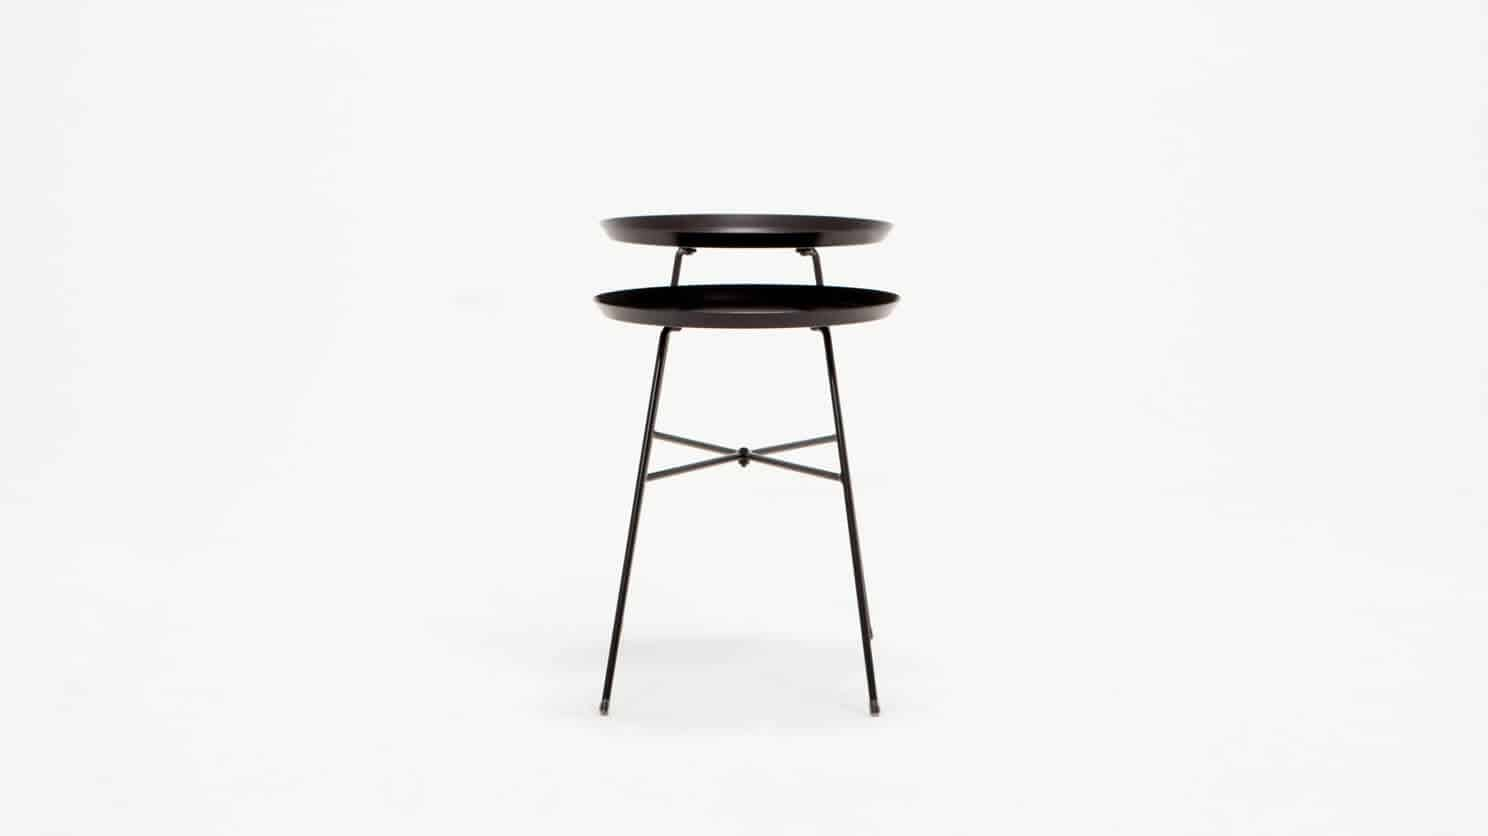 3020 703 1 2 end tables peggy side table side 01